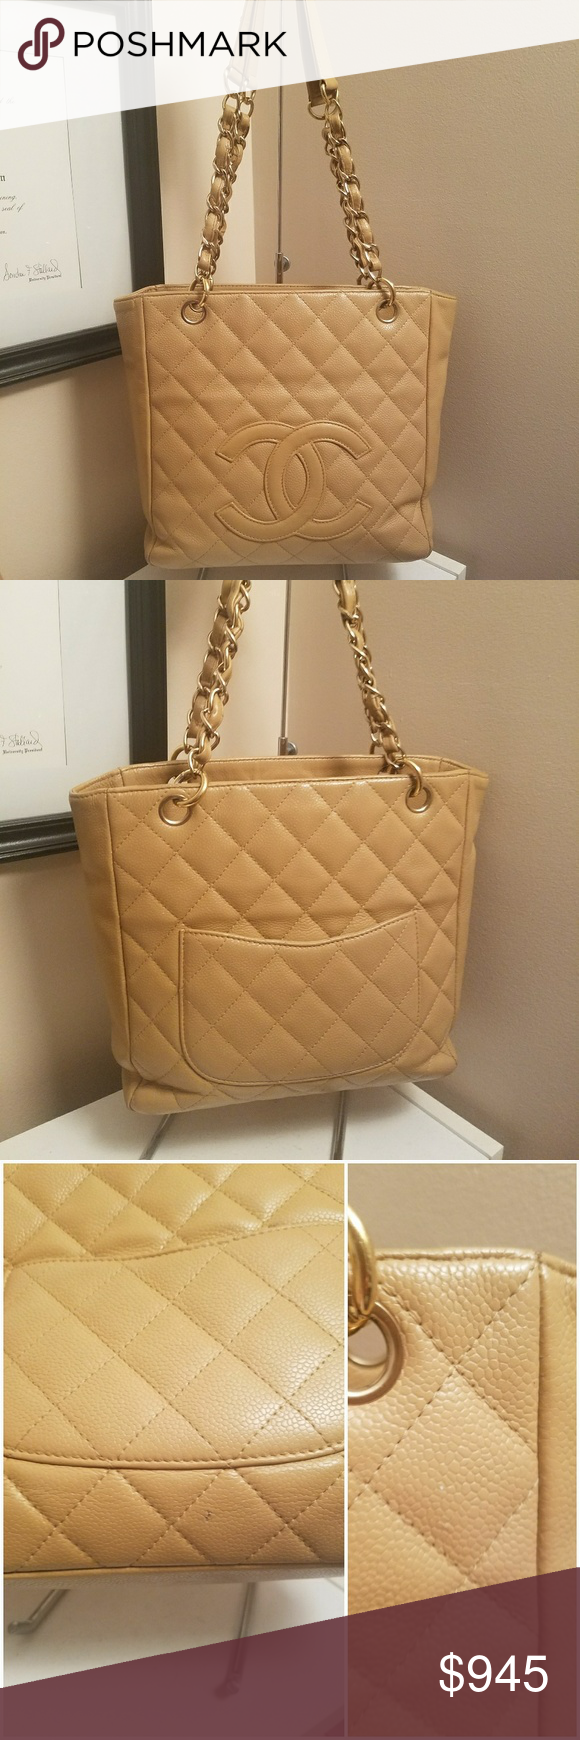 d17b98d87035 Auth Chanel PST Handbag Tote Auth Chanel PST Handbag Tote. Pre loved used  condition.